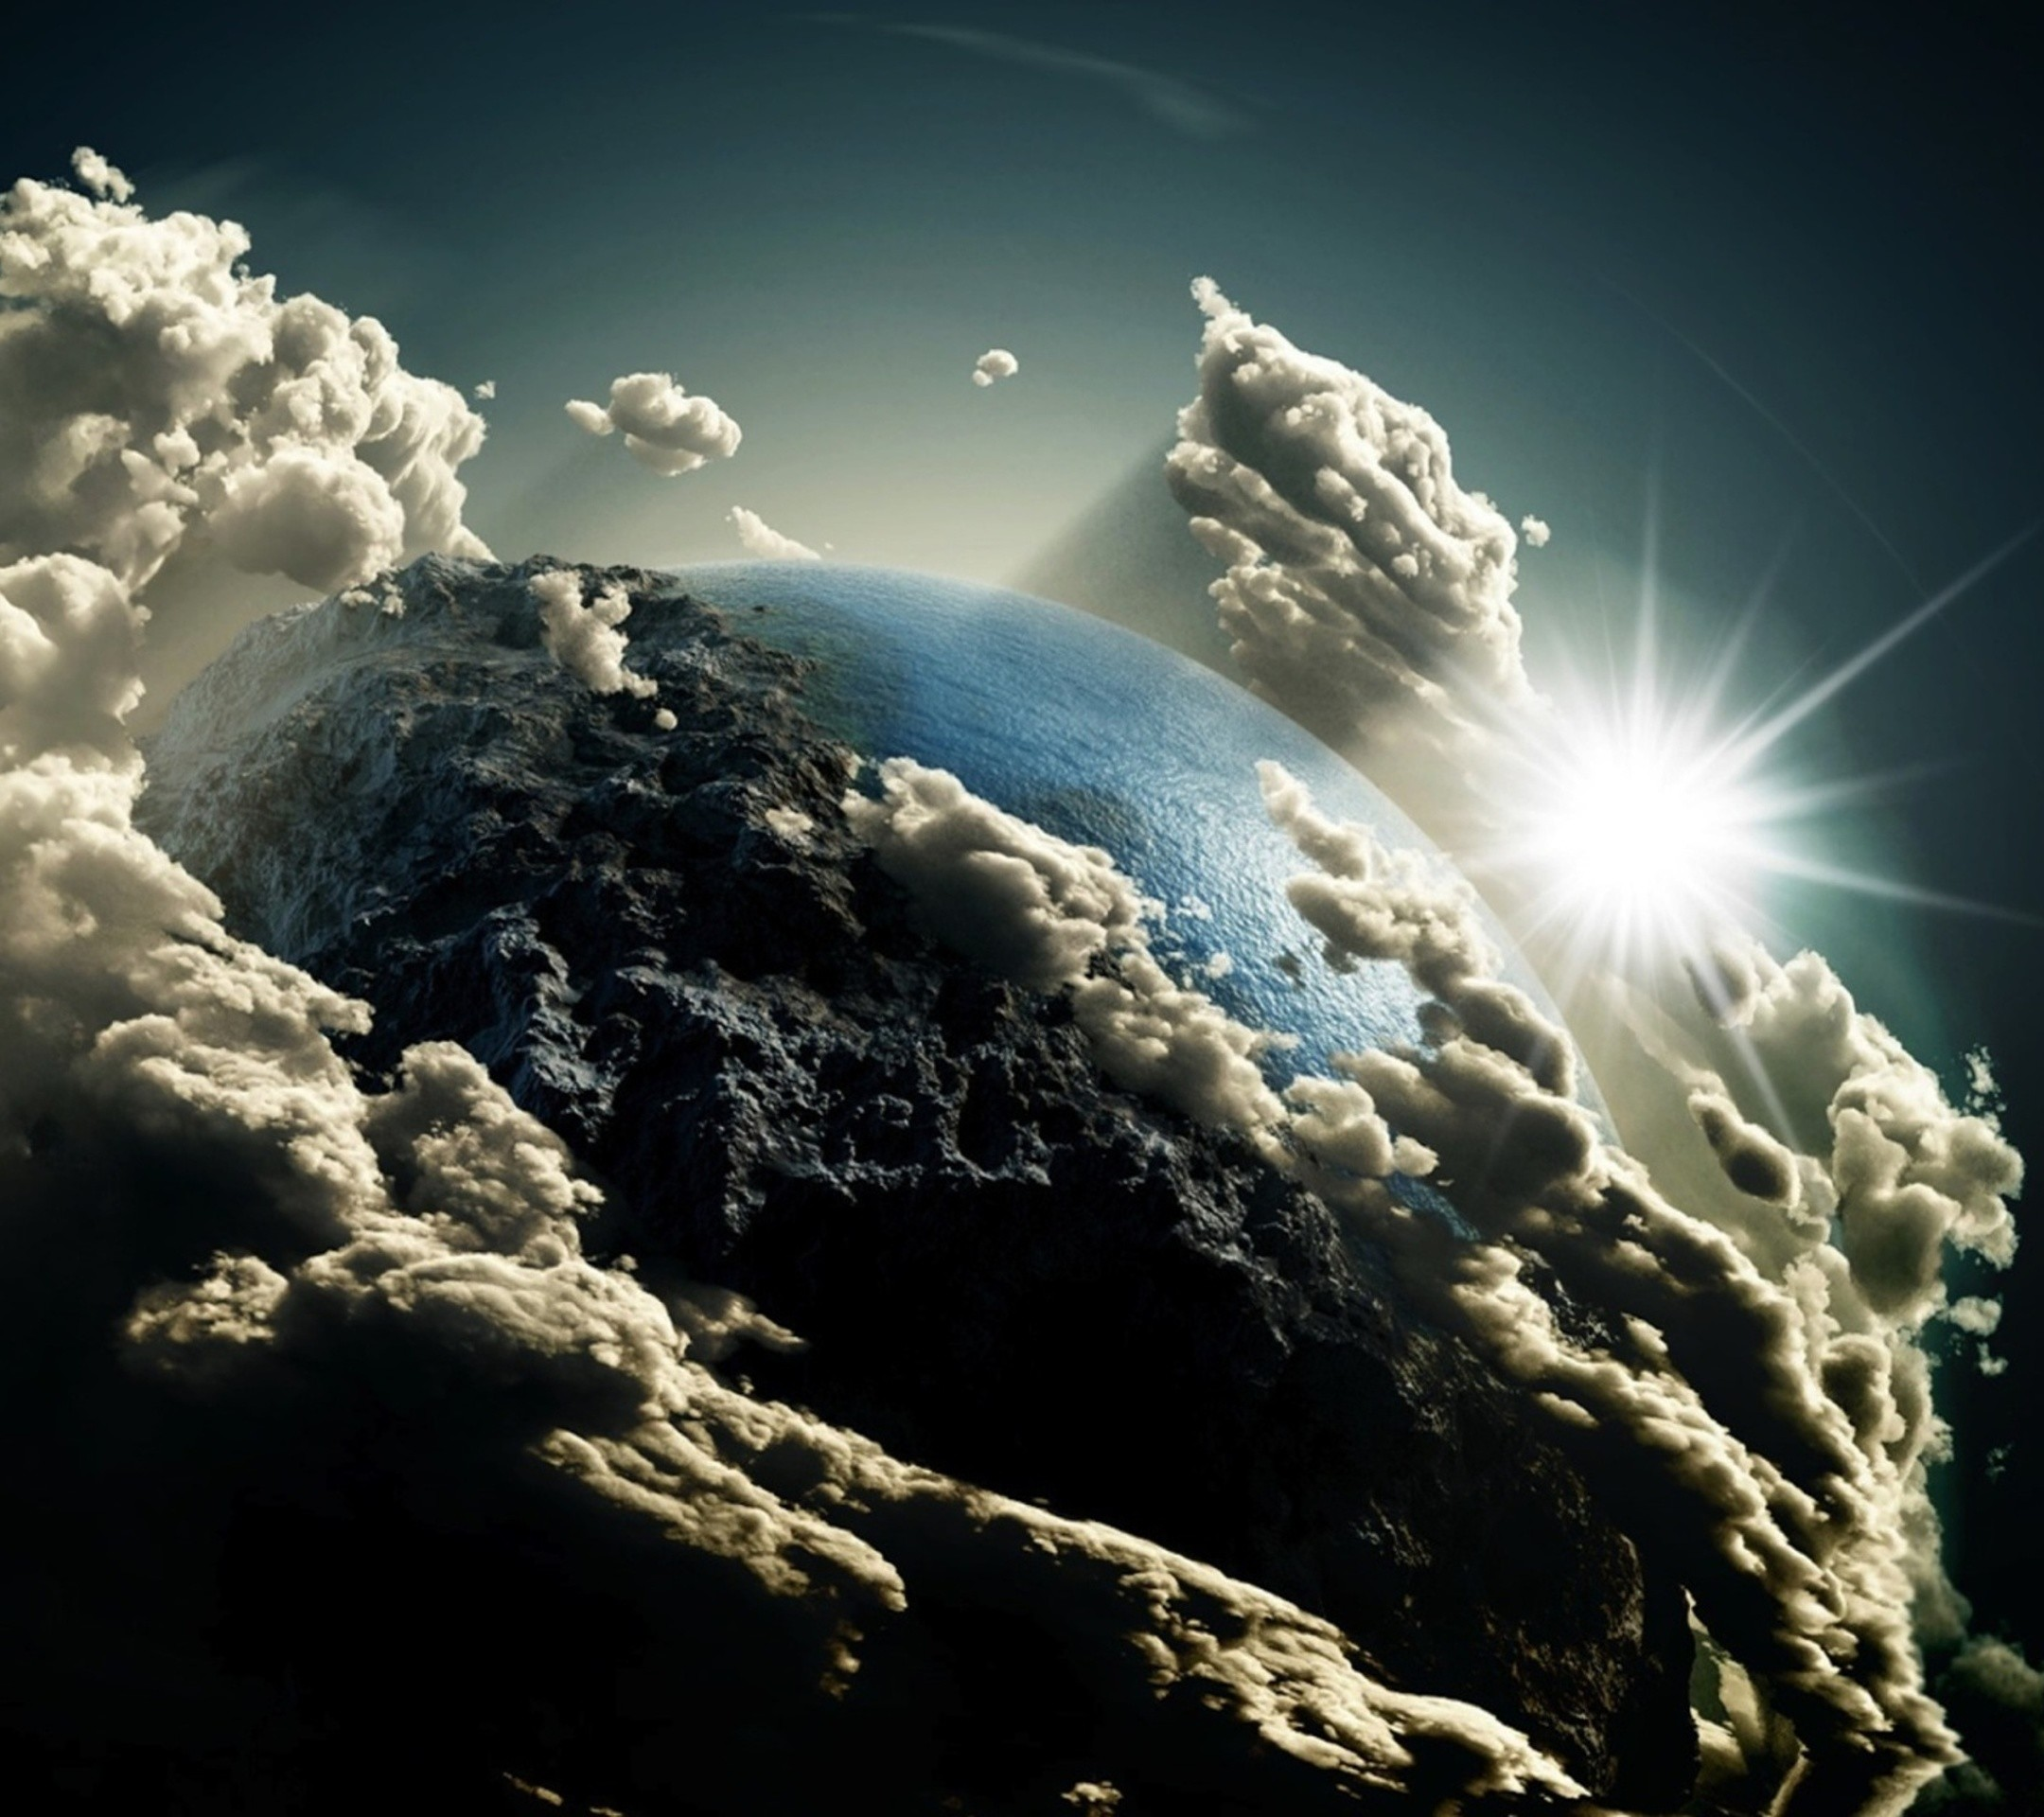 2160x1920 Earth's View in Clouds - Top 10 HD Samsung Galaxy S5 Wallpapers download